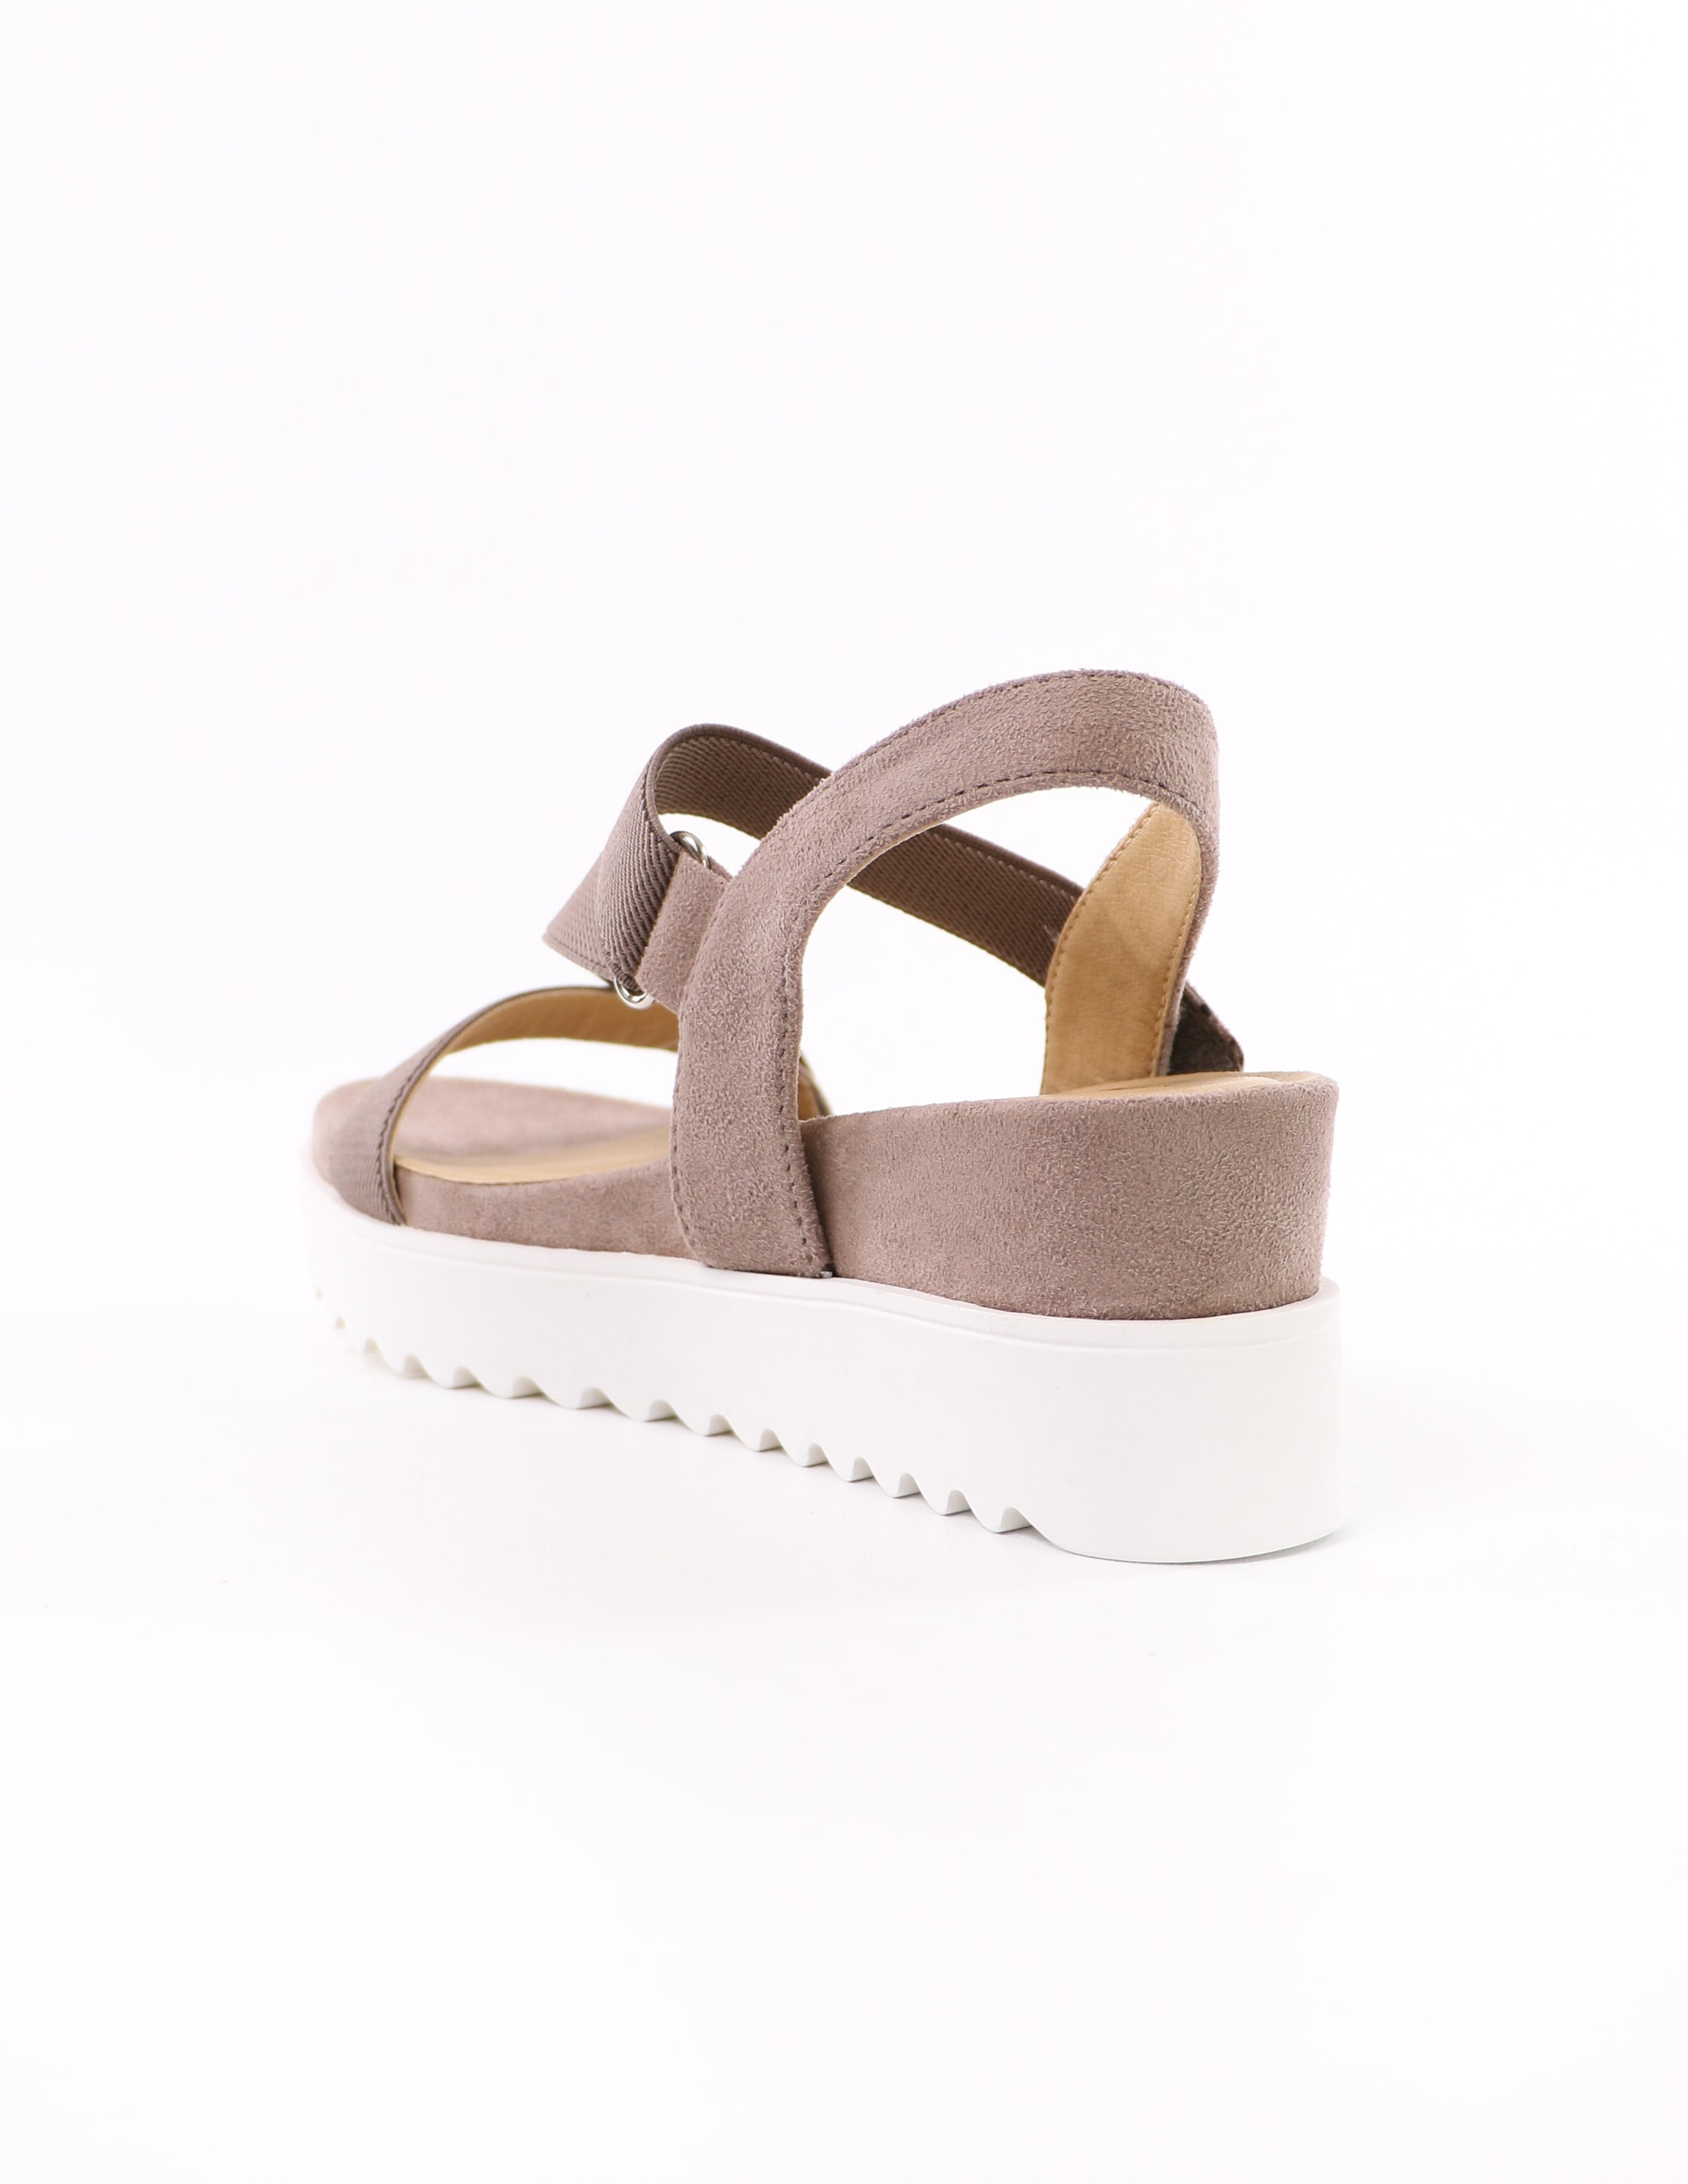 back of the taupe cubic soda strappy go lucky sandal with thick straps - elle bleu shoes